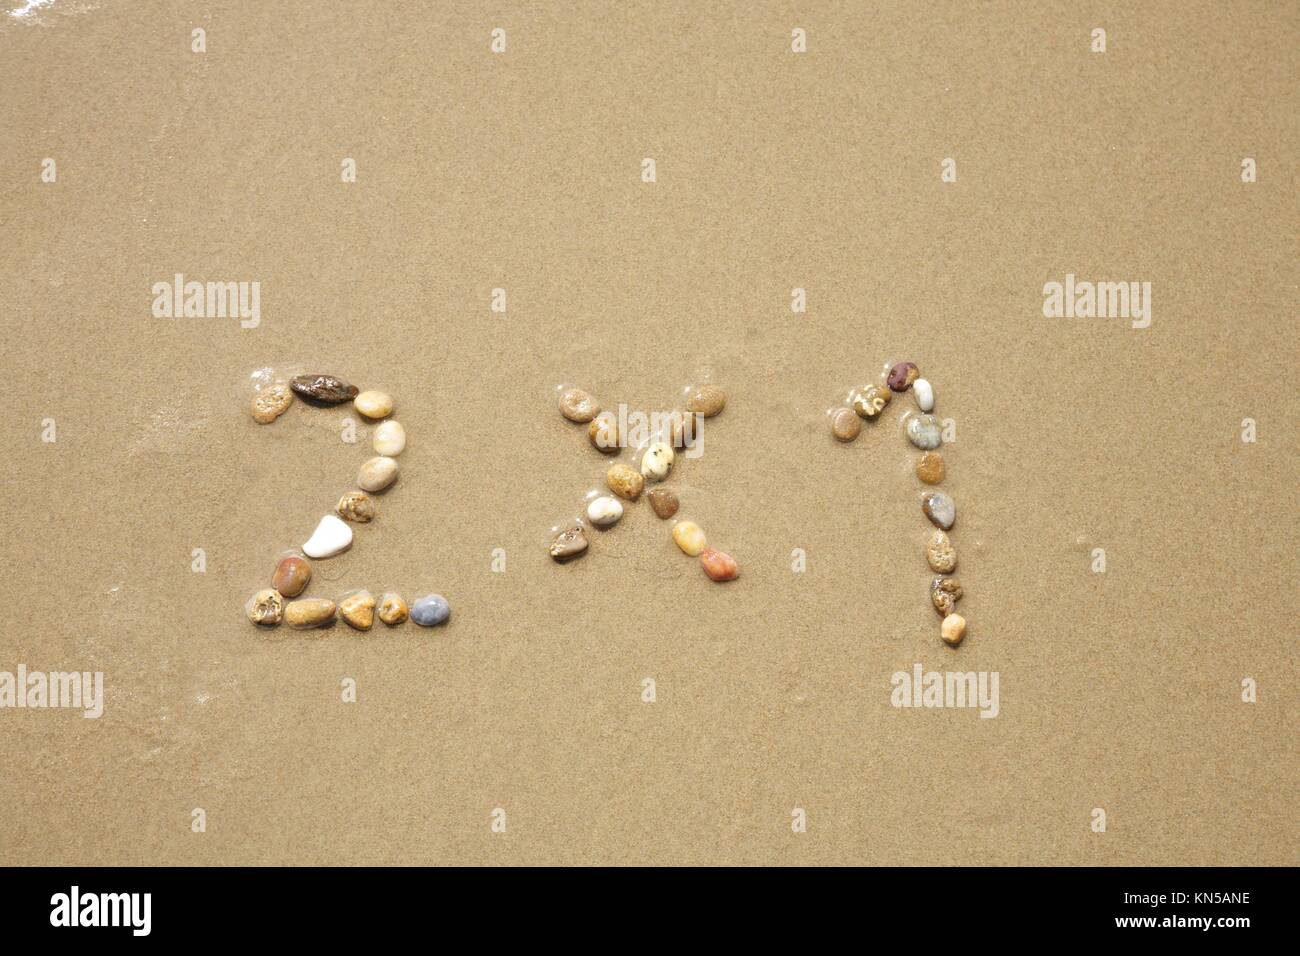 2x1 discount word writing with small stones on sand beach ground. - Stock Image